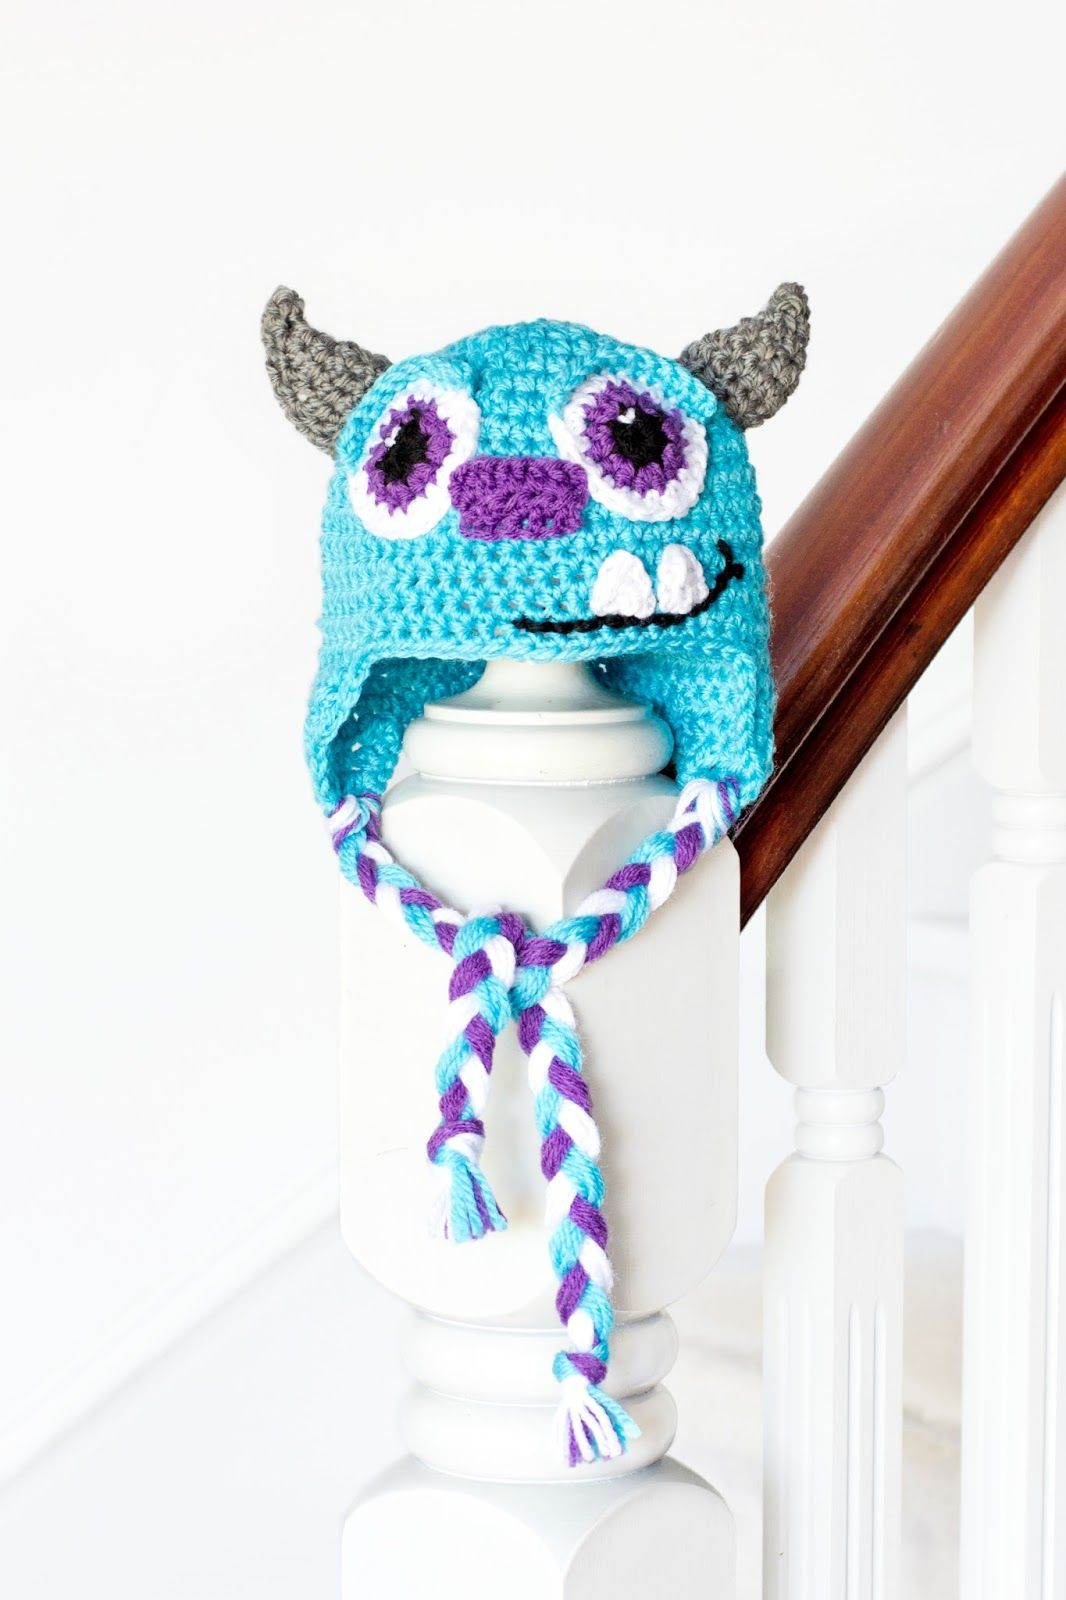 Monsters Inc. Sulley Inspired Baby Hat Crochet Pattern | Hooked on ...